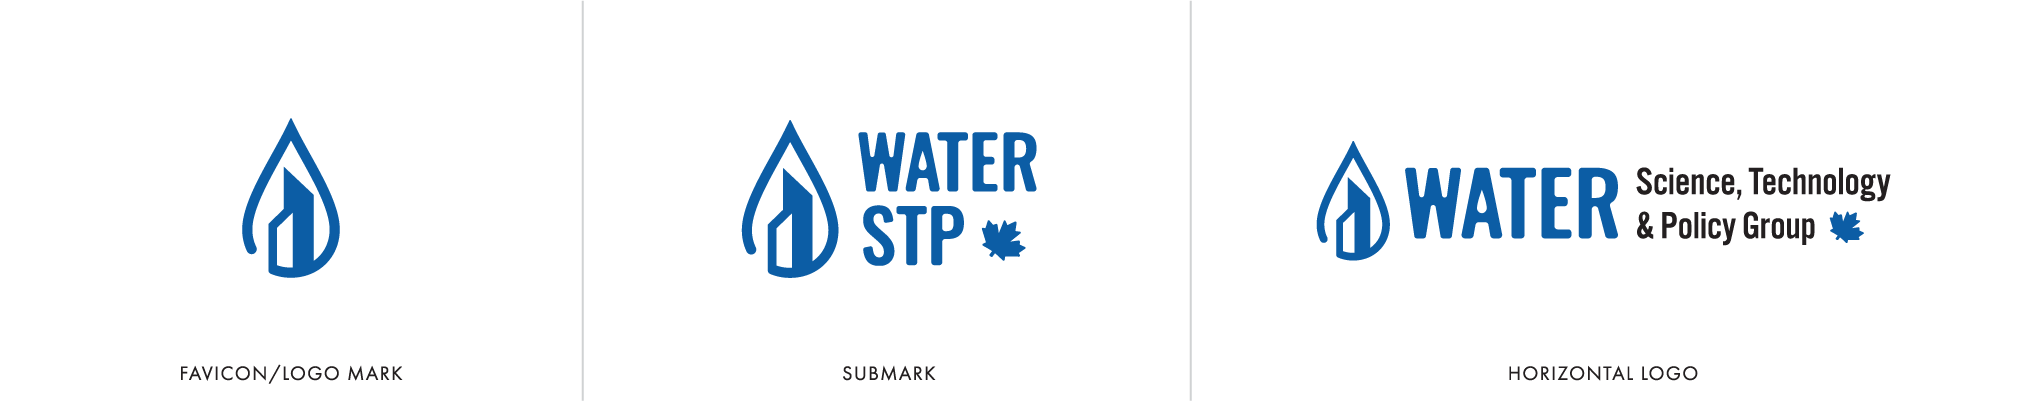 Water technology service for municipalities brand identity logo water drop with buildings alternate stacked and horizontal logo